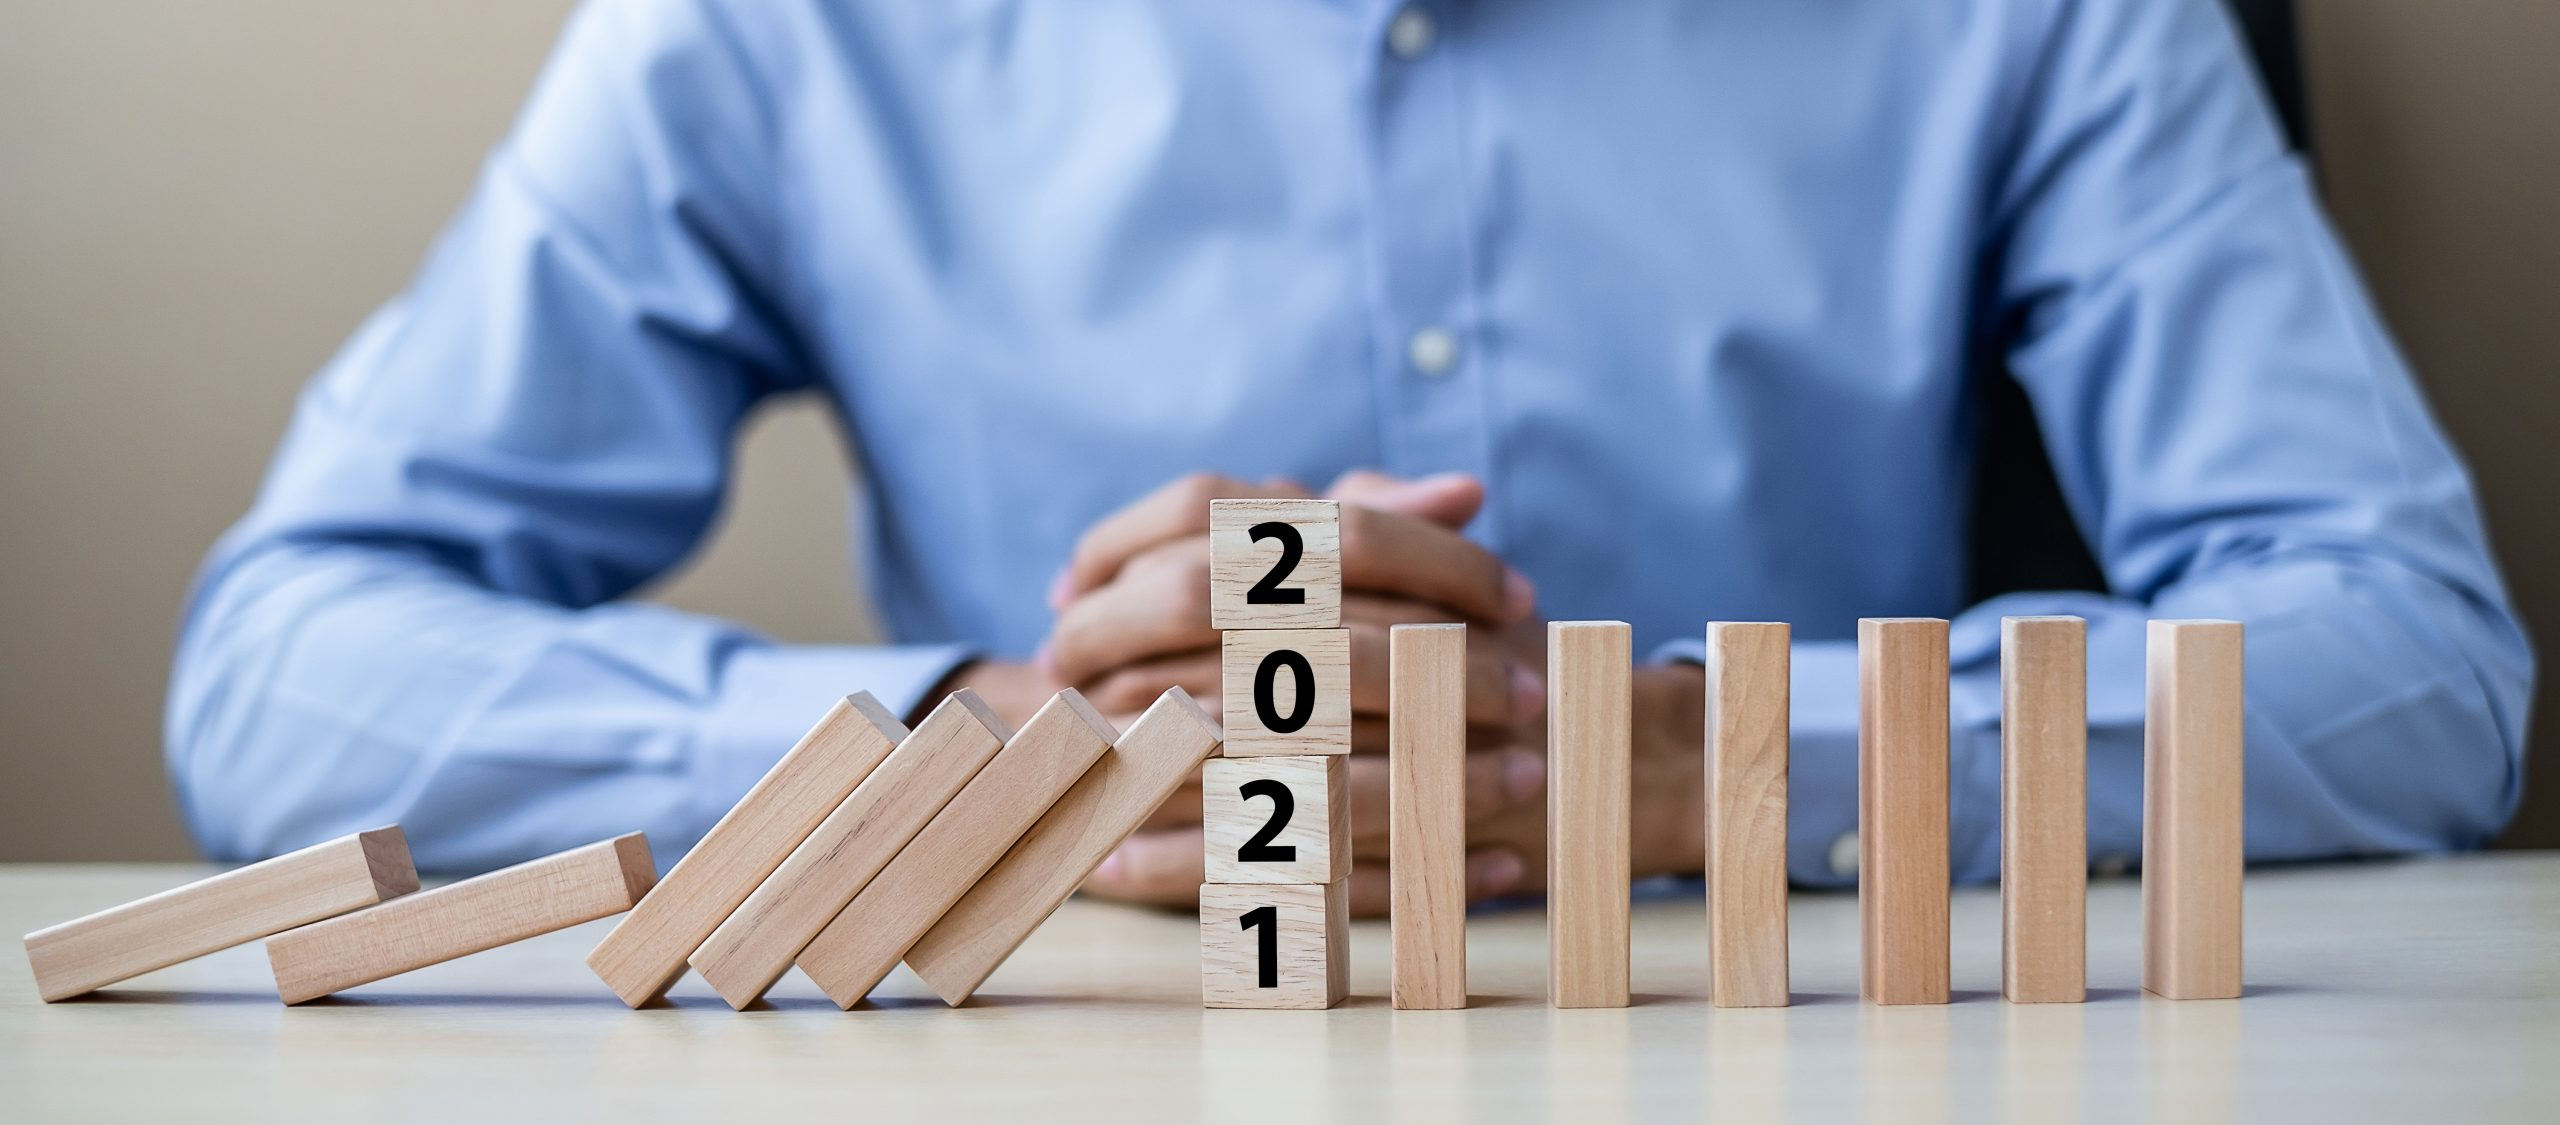 New Year, New You: 5 Ways to Improve Your Organization in 2021